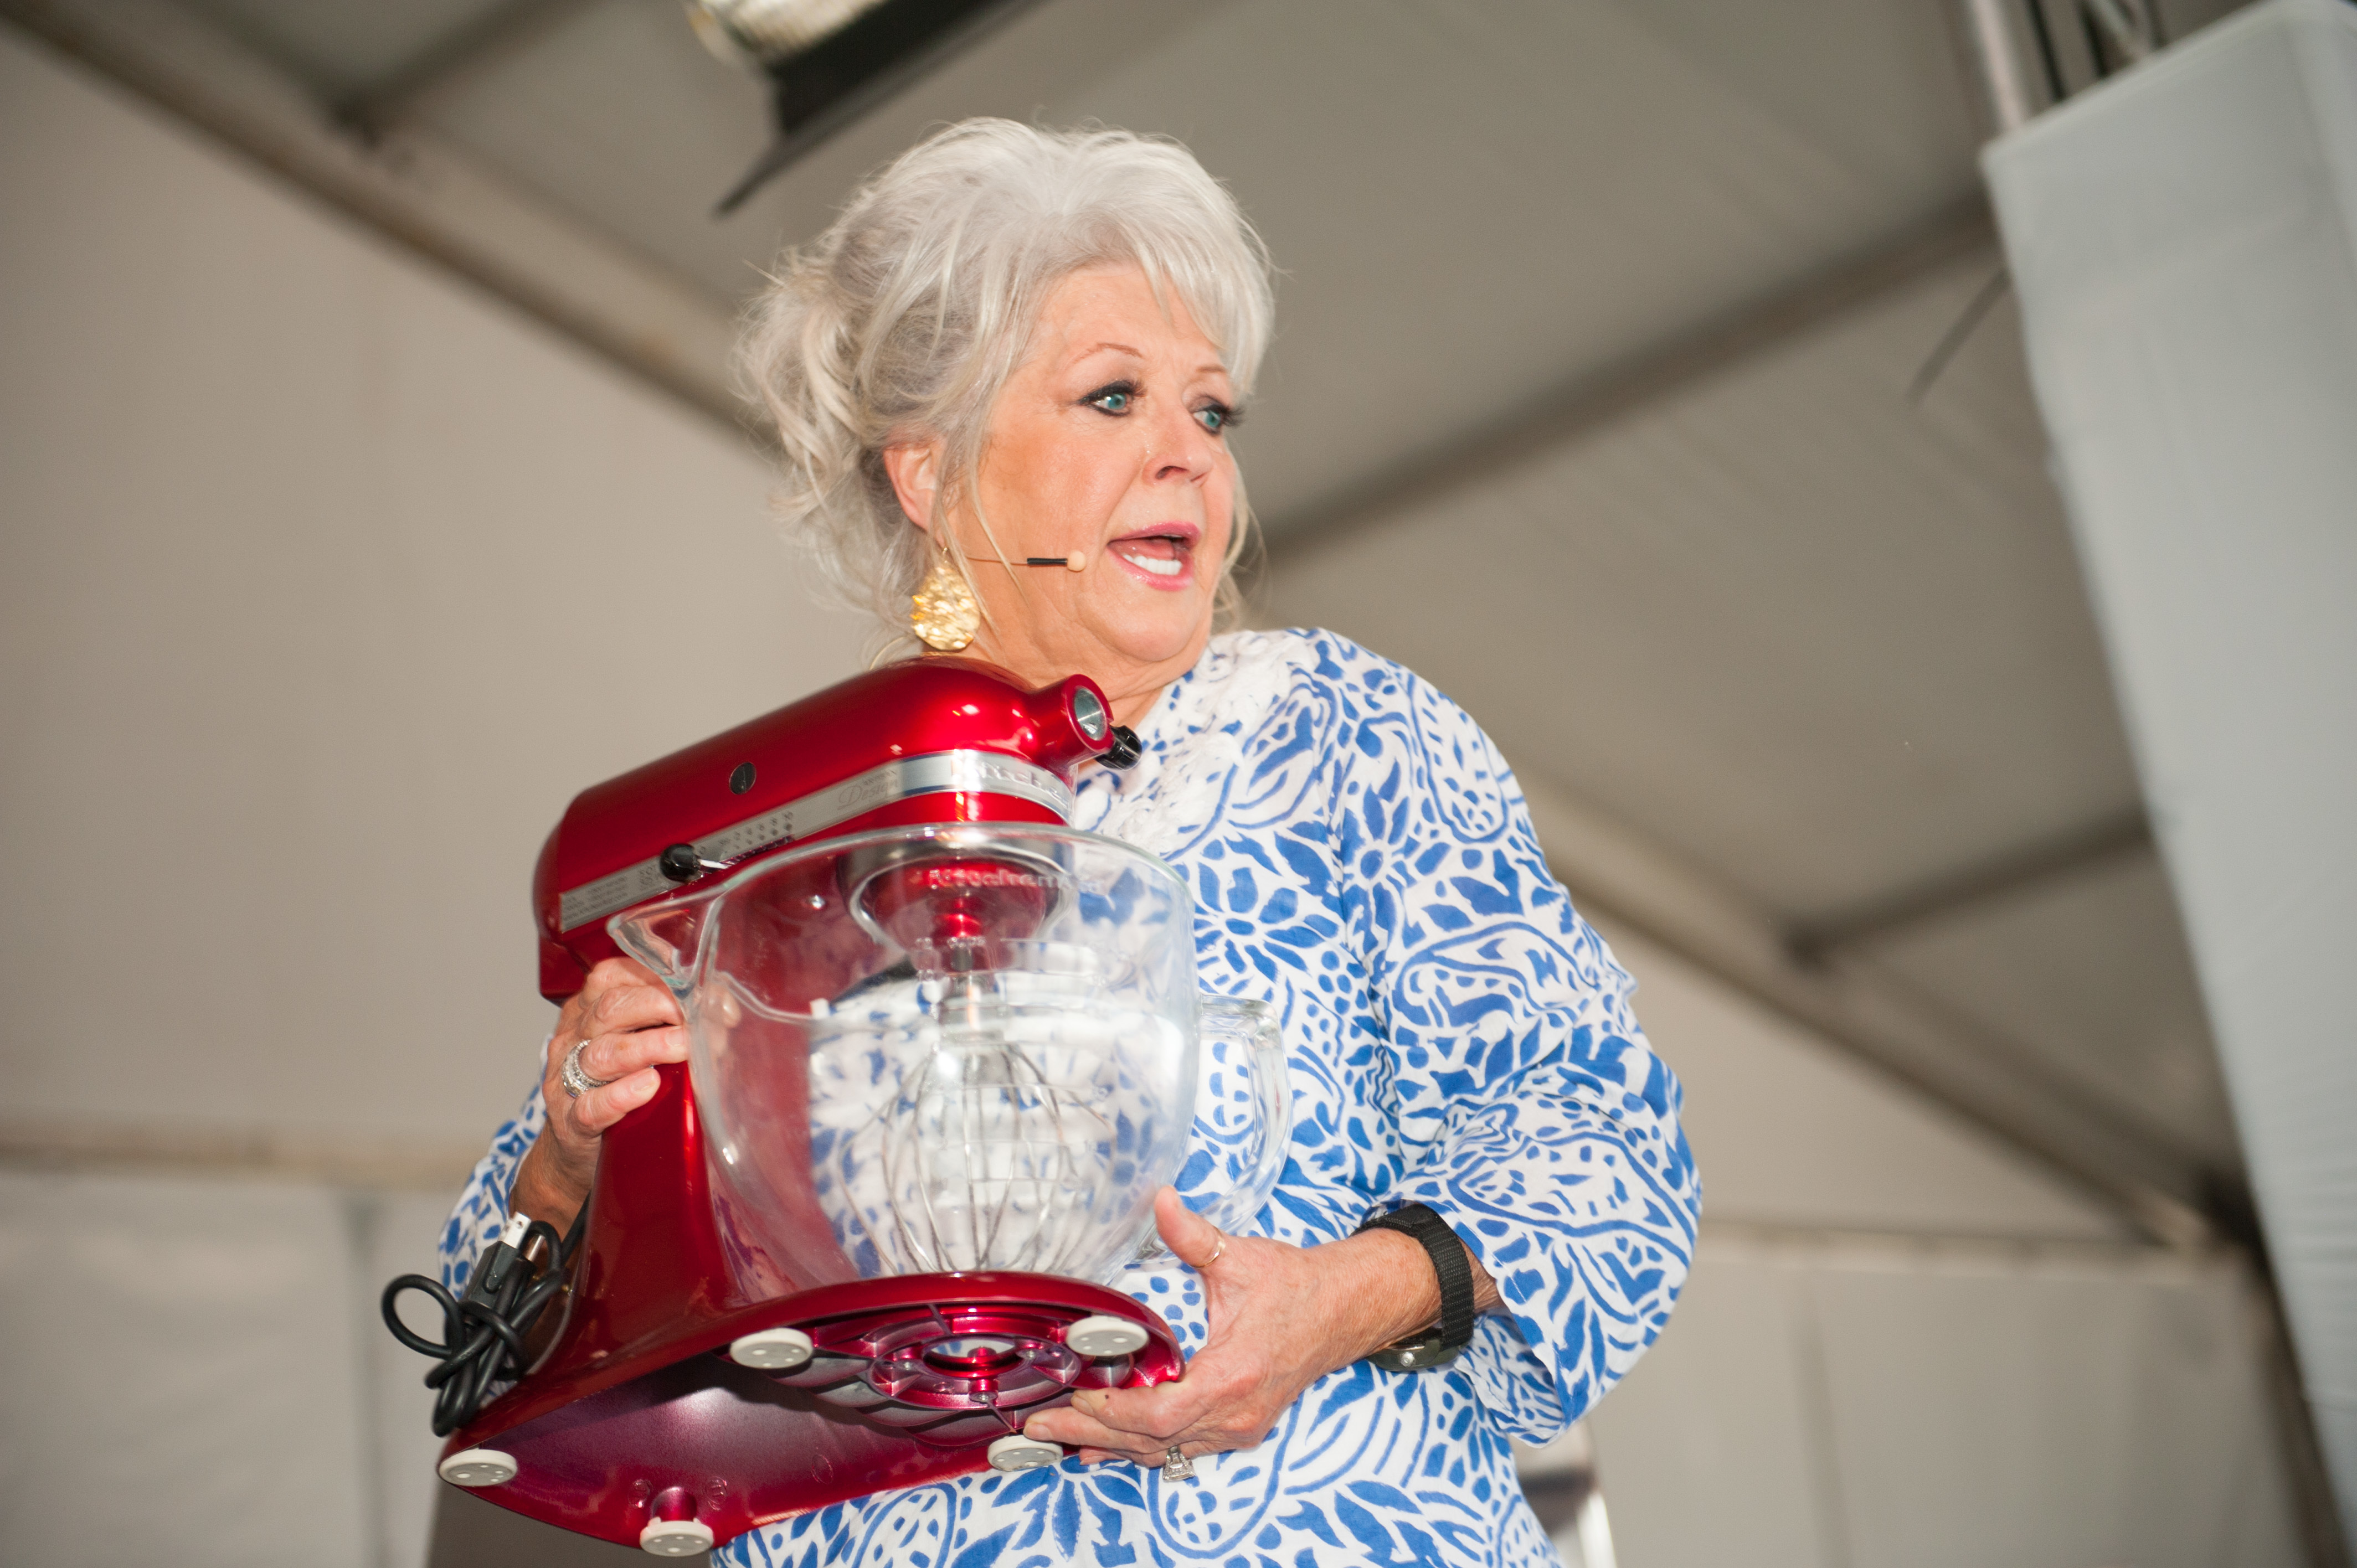 Paula Deen explains how she lost 35 pounds